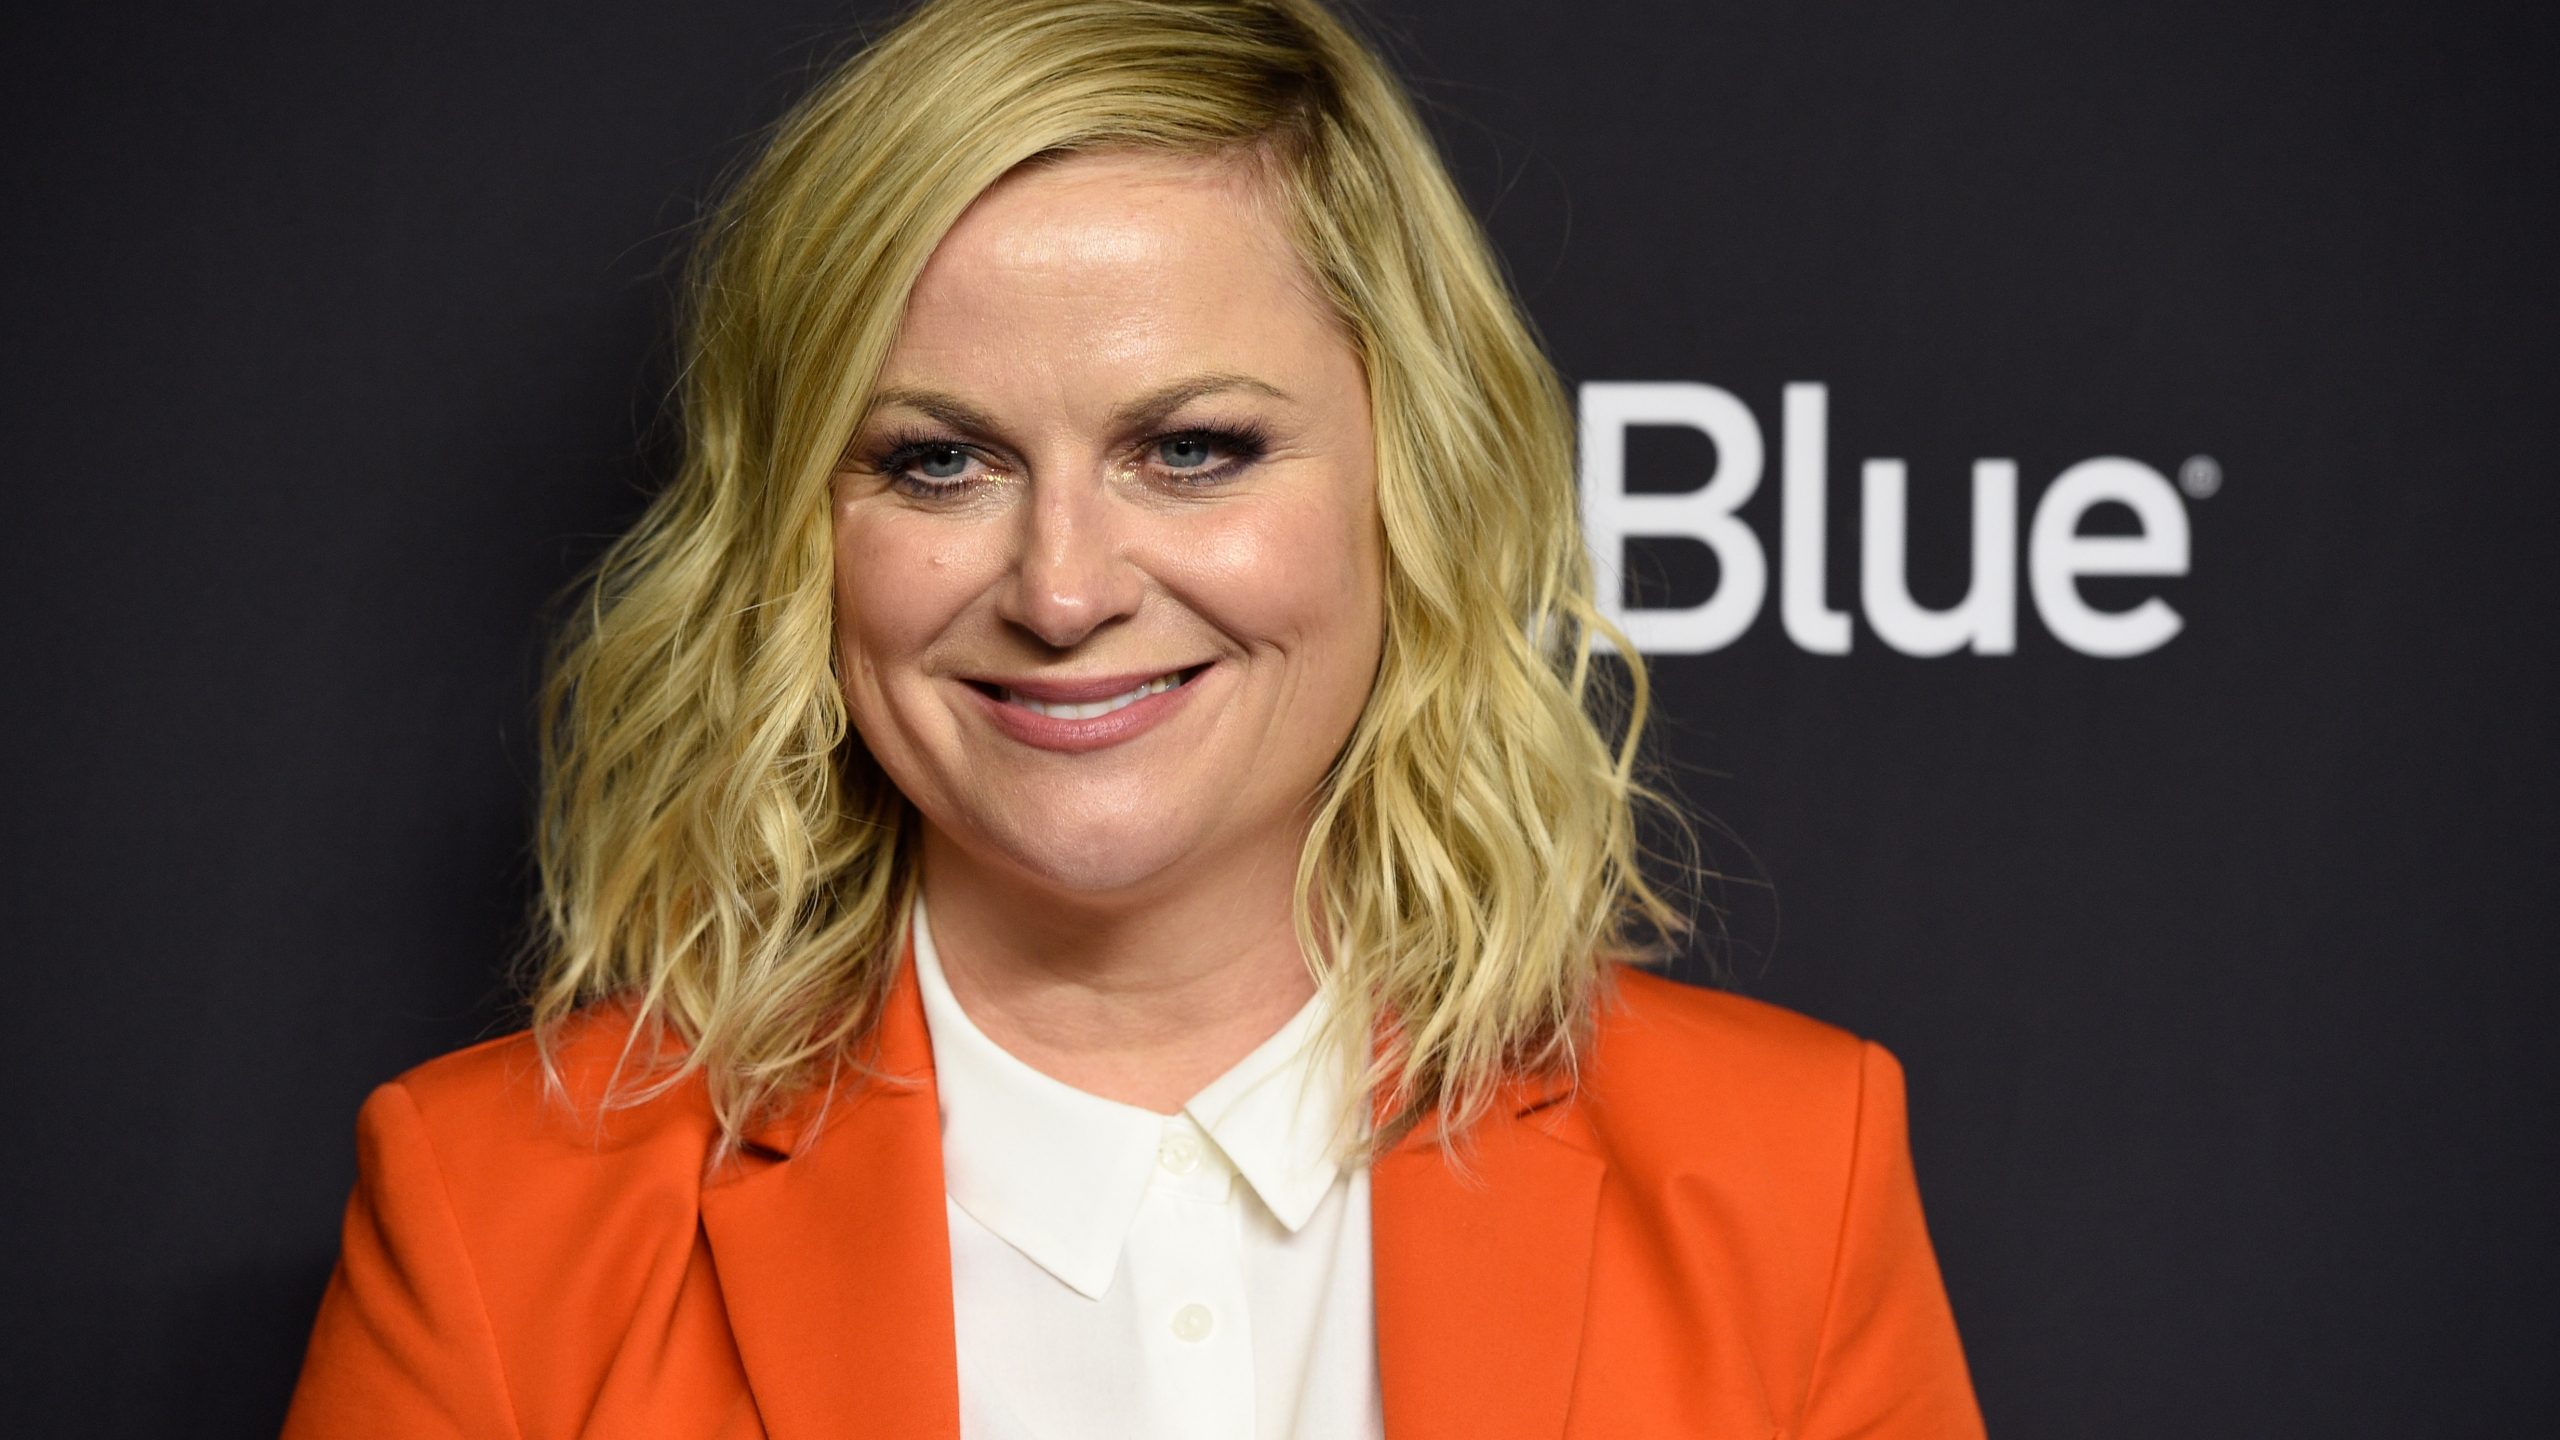 Amy Poehler, MARCH 21, 2019 FILE PHOTO